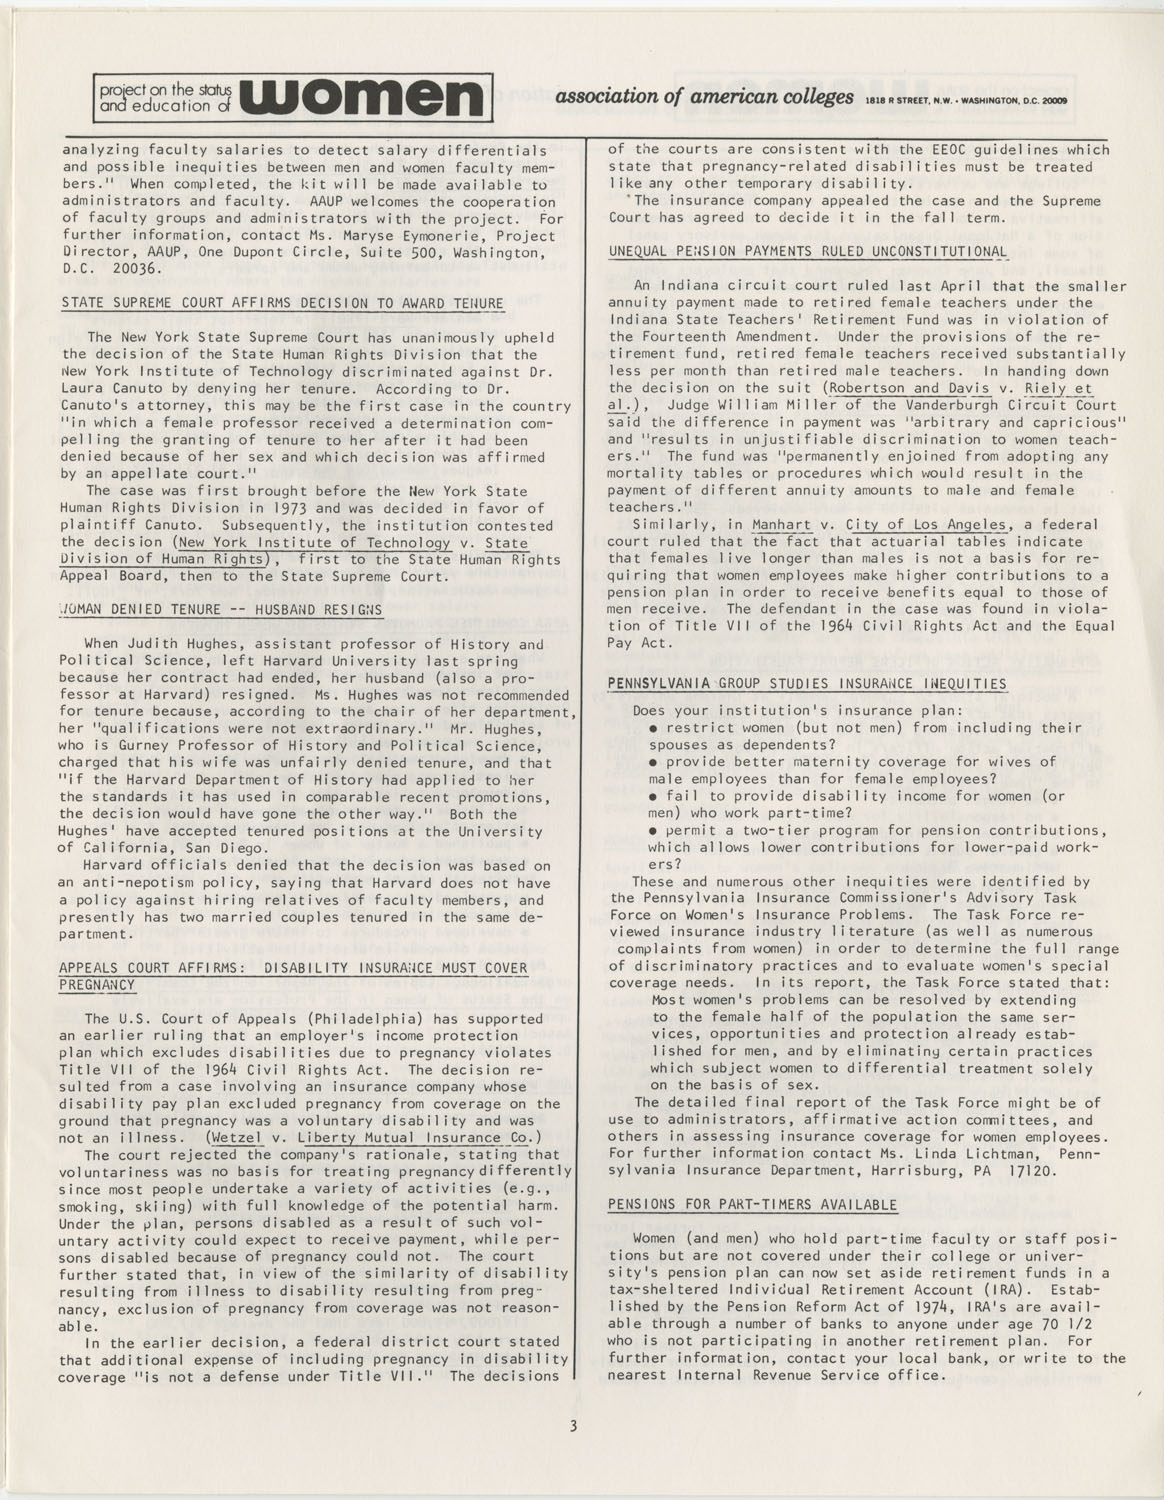 On Campus With Women, Association of American Colleges, November 1975, Page 3